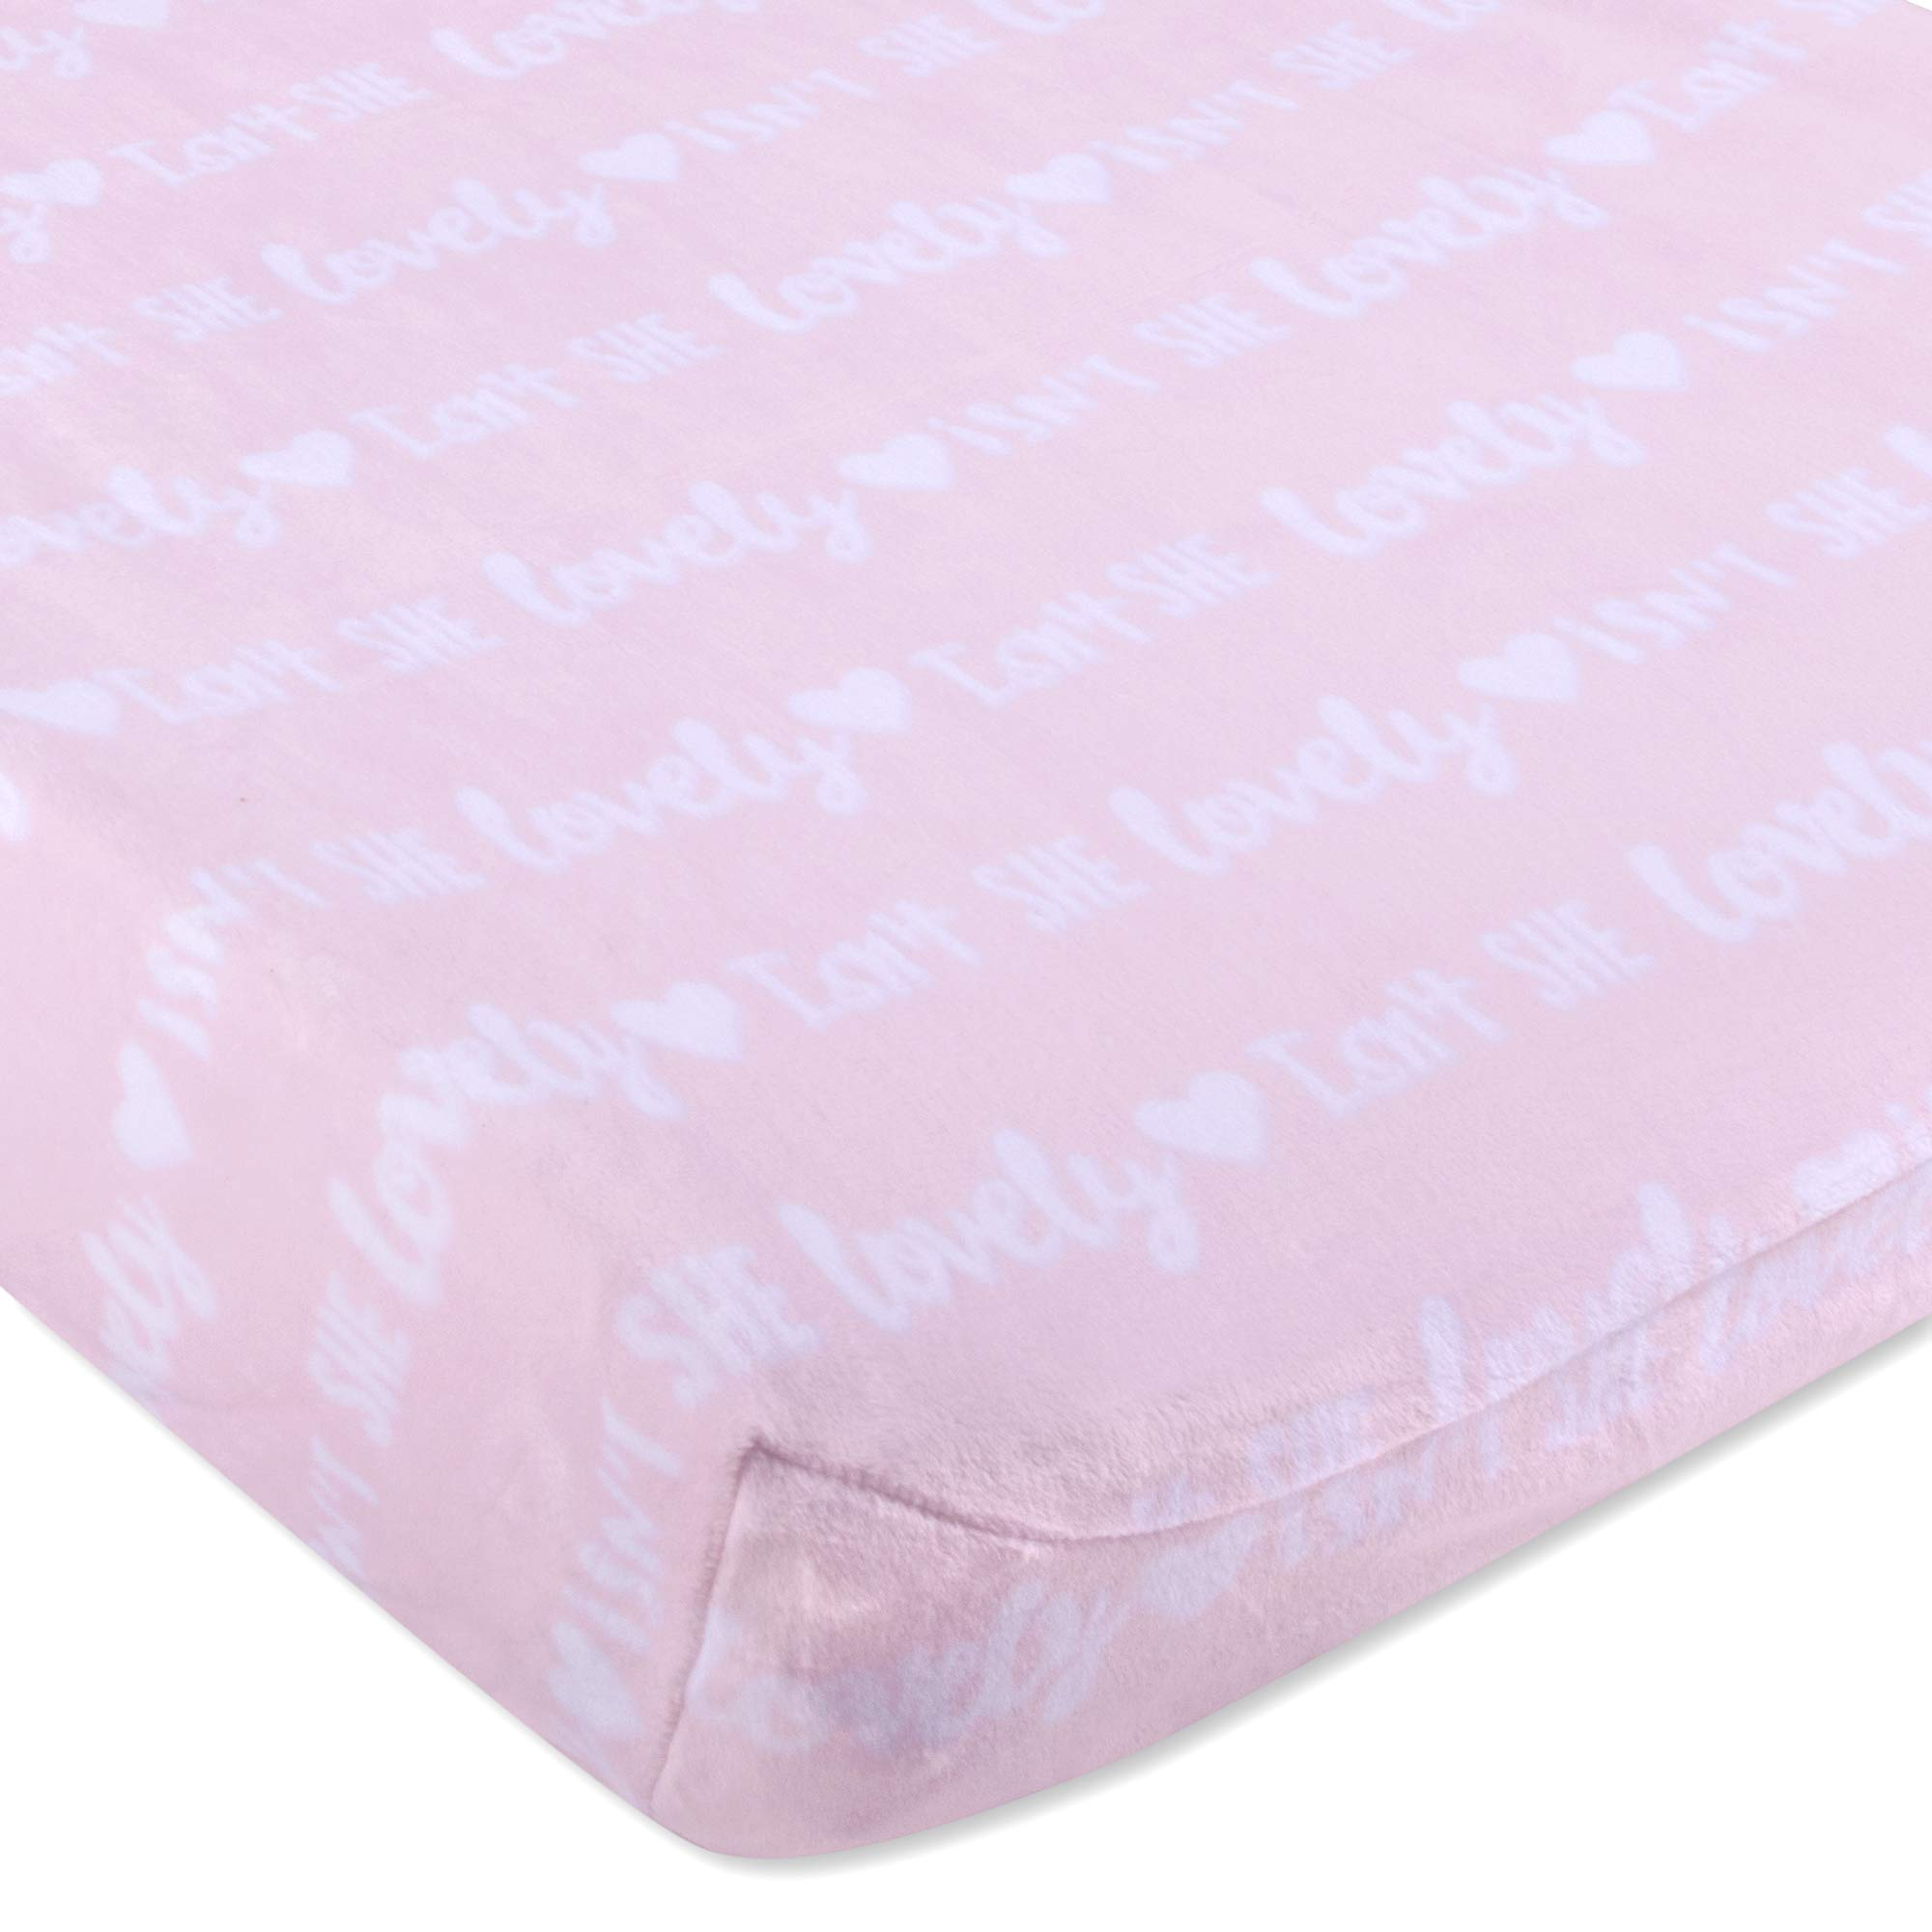 Wendy Bellissimo Velboa Contoured Diaper Pad Cover for Diaper Changer (32x16x6) - Isn't She Lovely in Pink/White